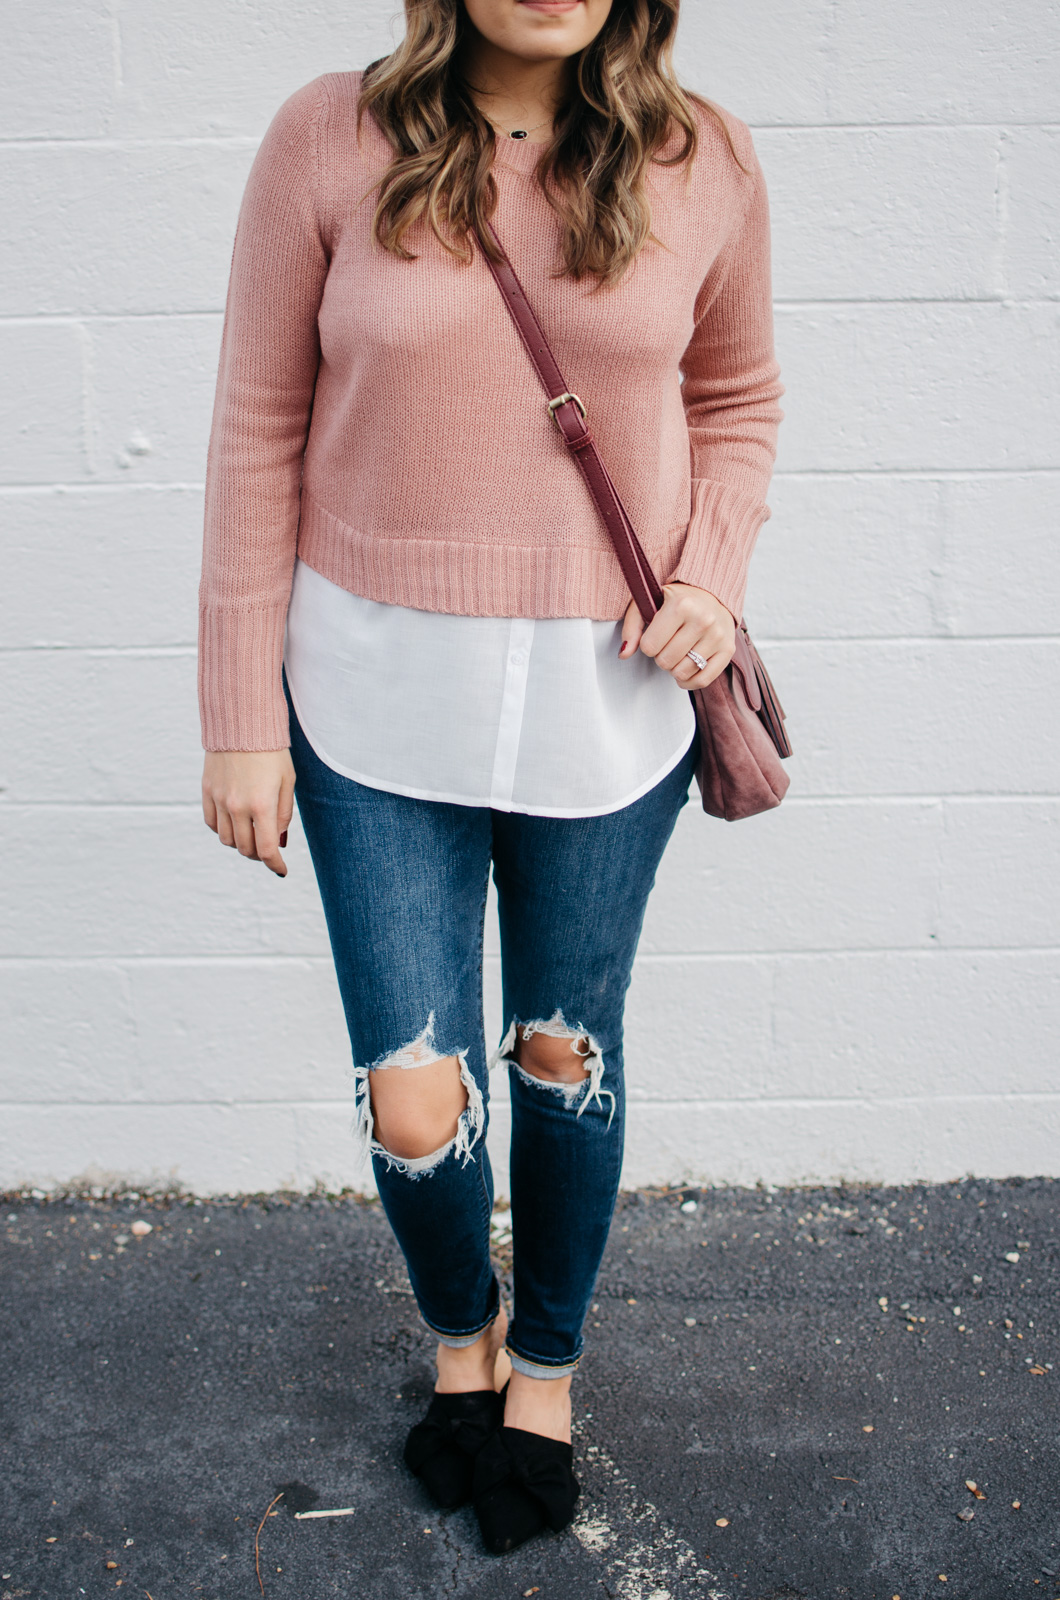 fall layered sweater outfit idea | For more preppy Fall outfit ideas, click through to bylaurenm.com!